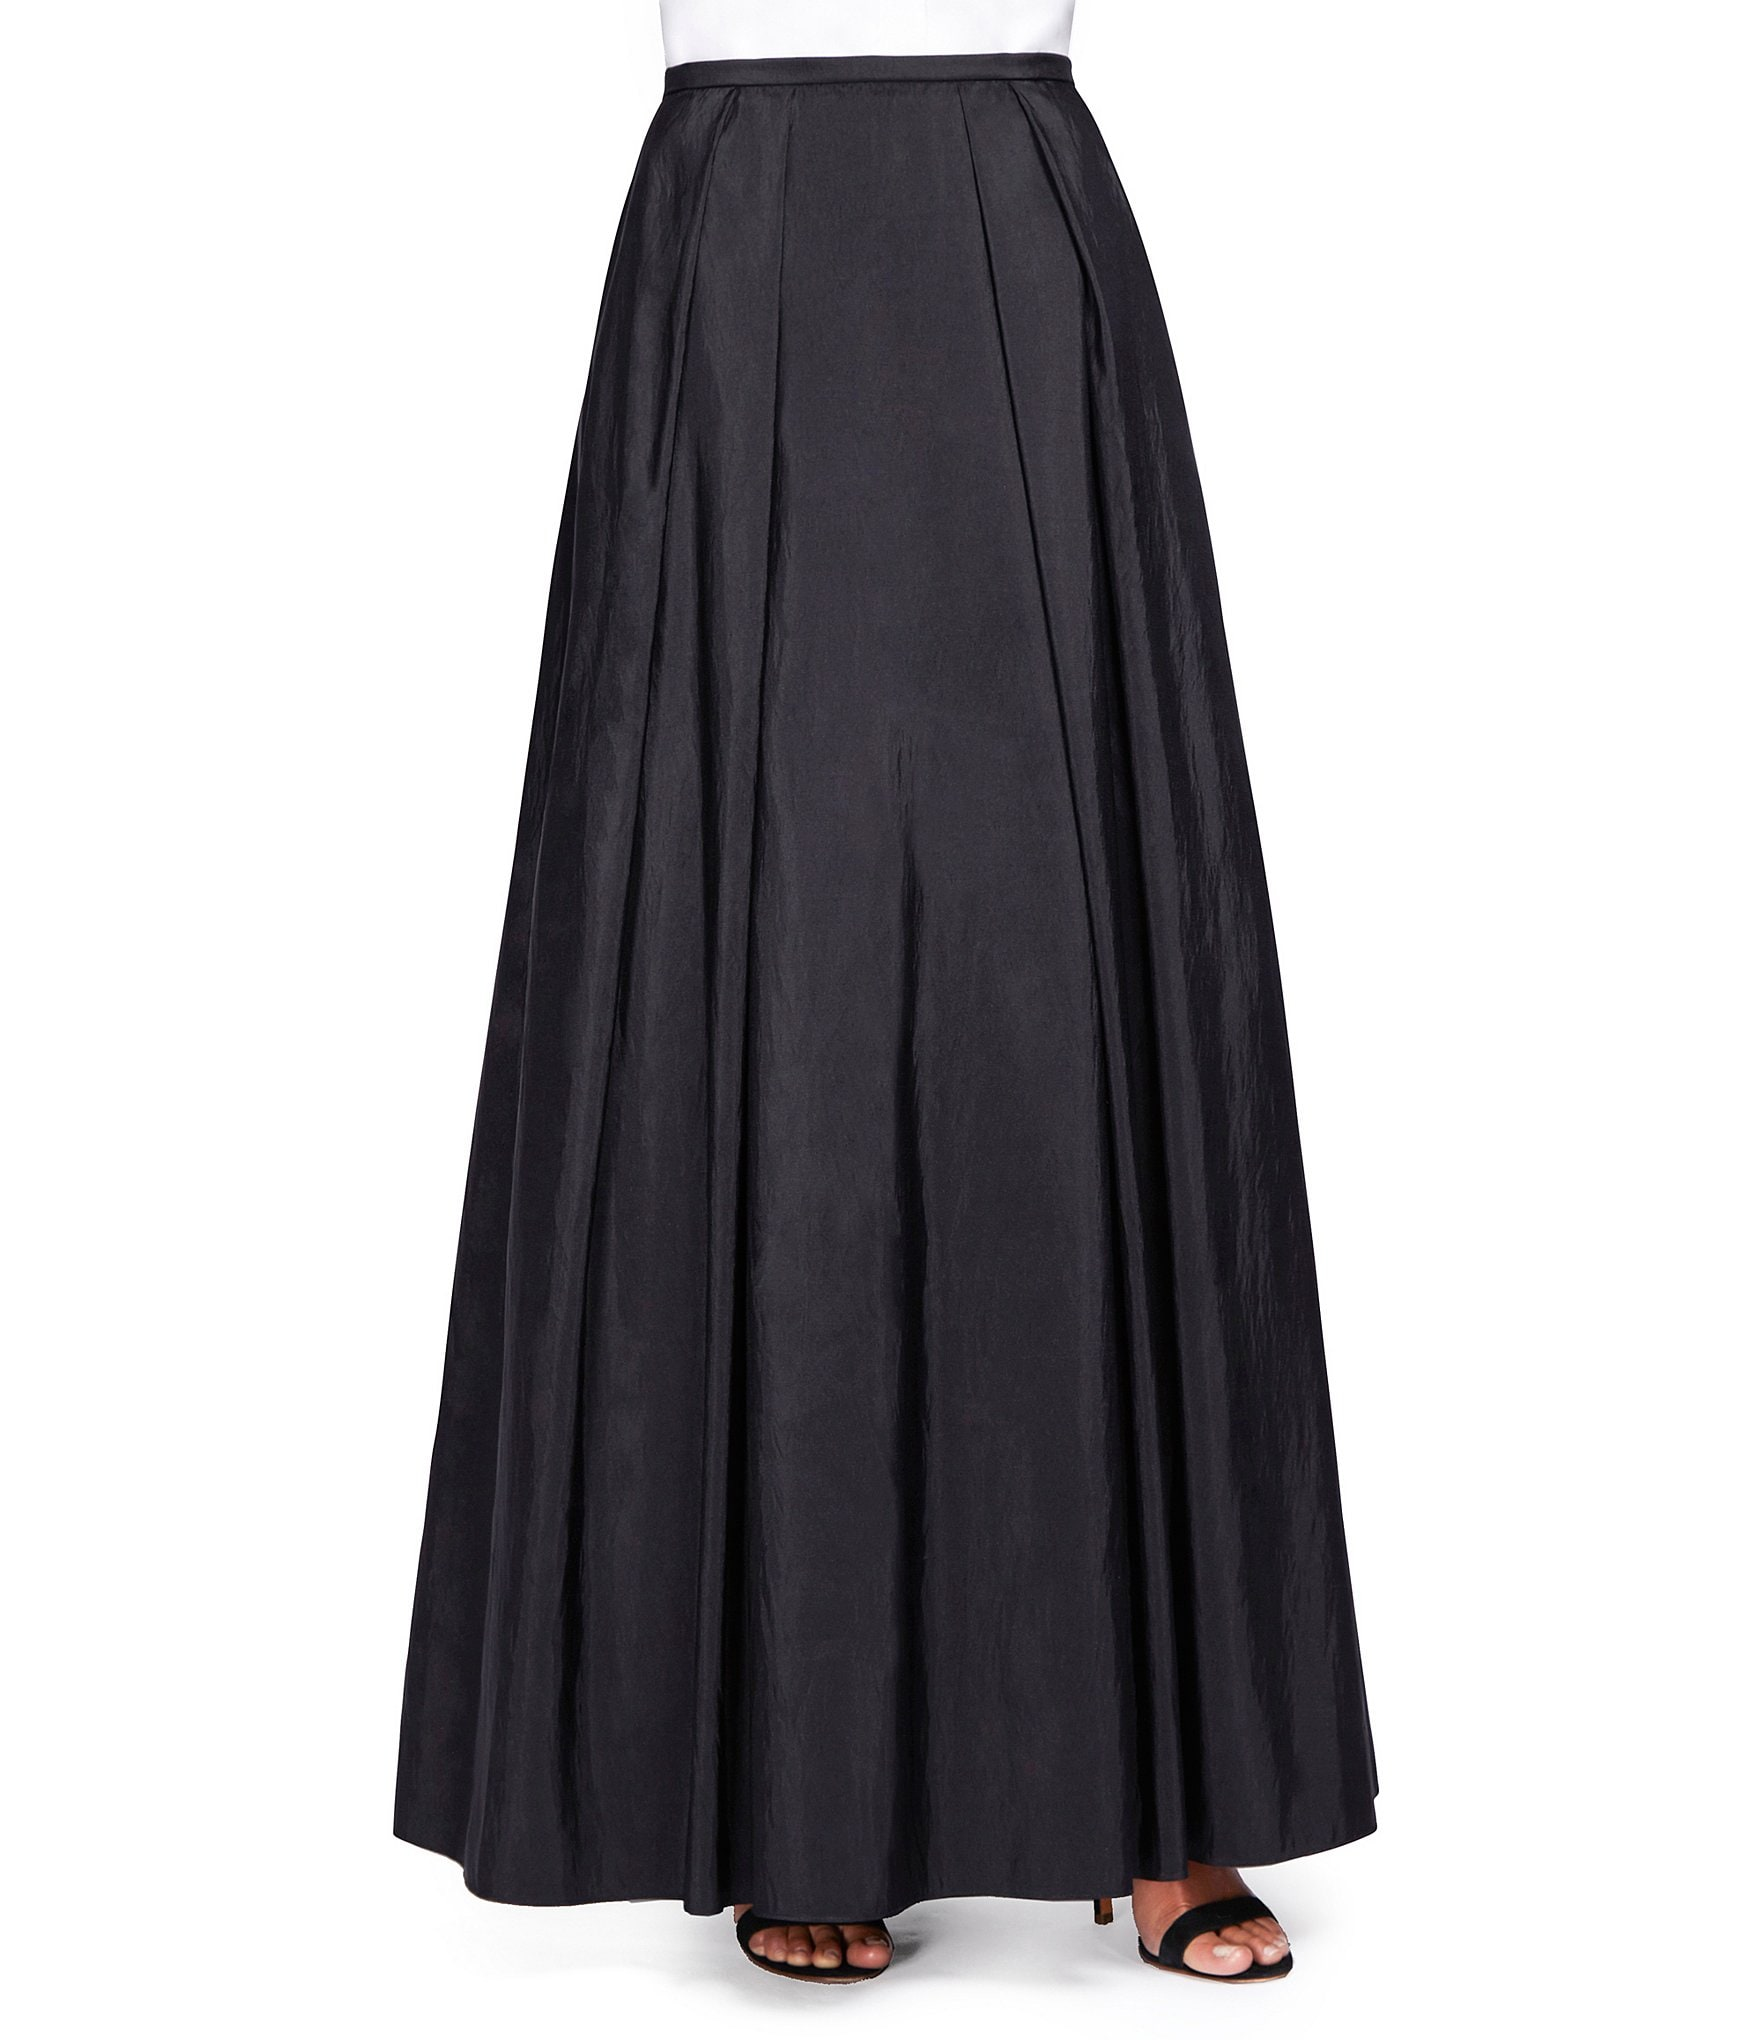 d8a18ee30e37 Limited Availability Women's Formal & Dressy Skirts | Dillard's